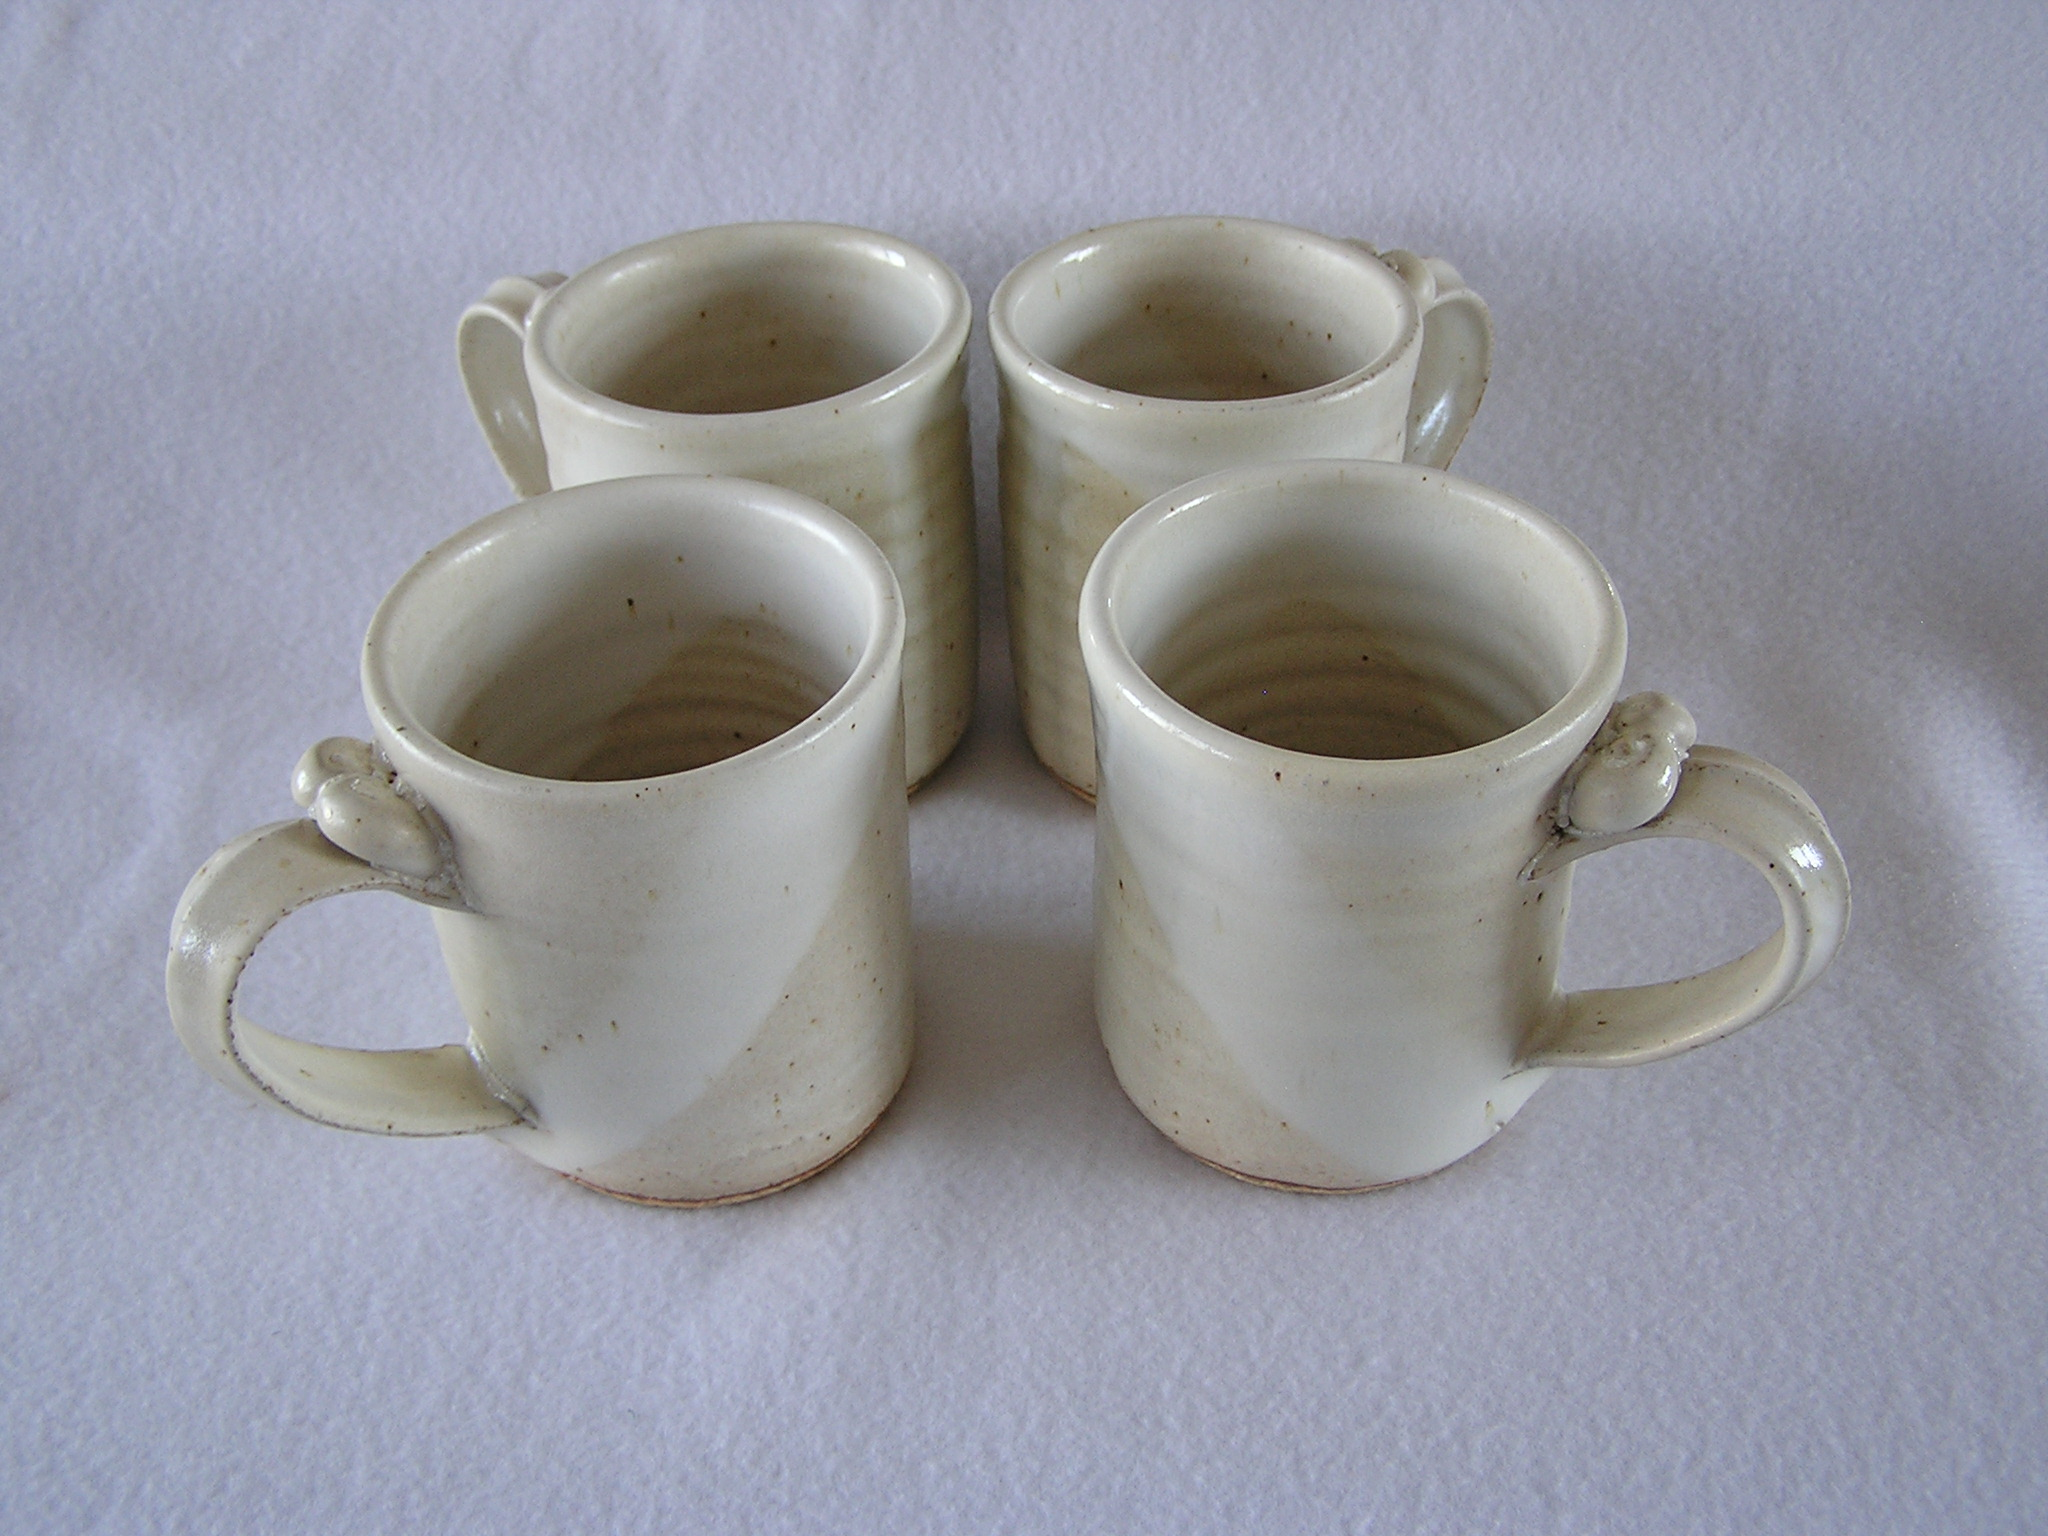 Mug- 4x3 in D825 Alabaster Set 4 (NFS)